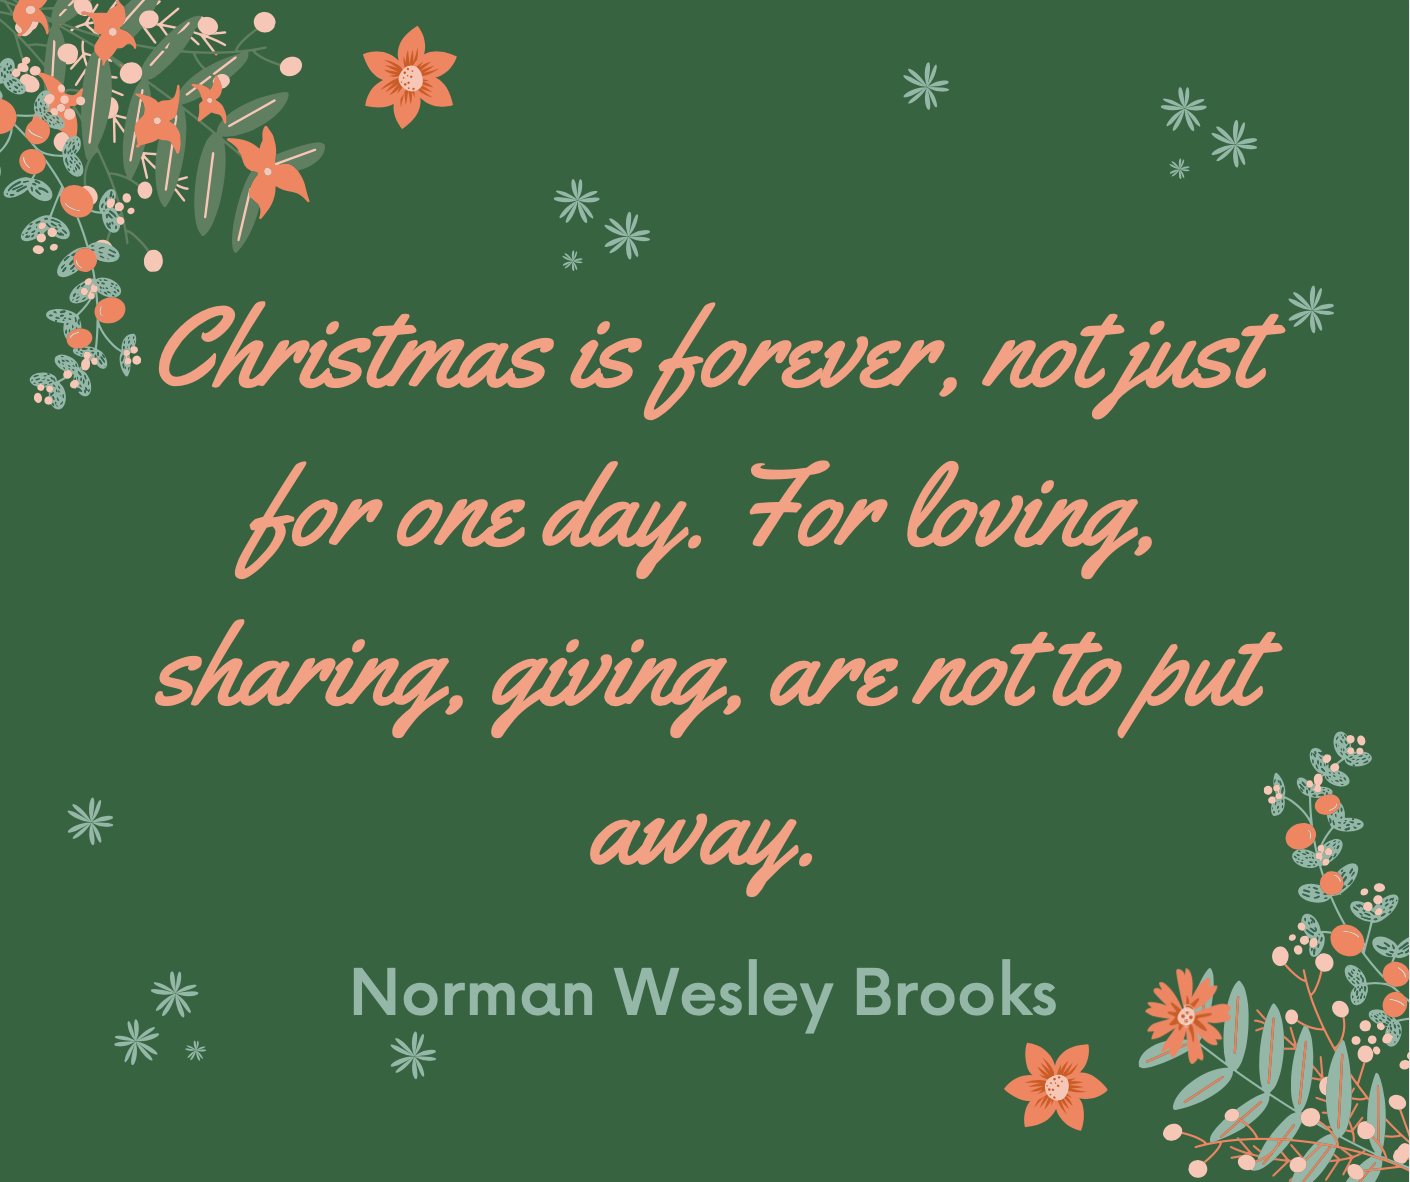 """""""Christmas is forever, not for just one day. For loving, sharing, giving, are not to put away."""""""